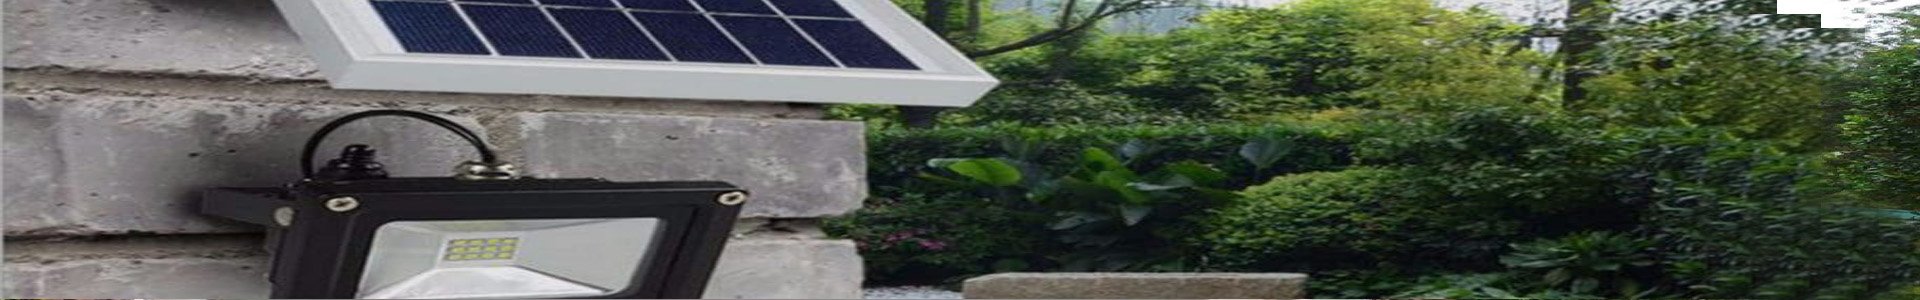 solar flood lights with remote